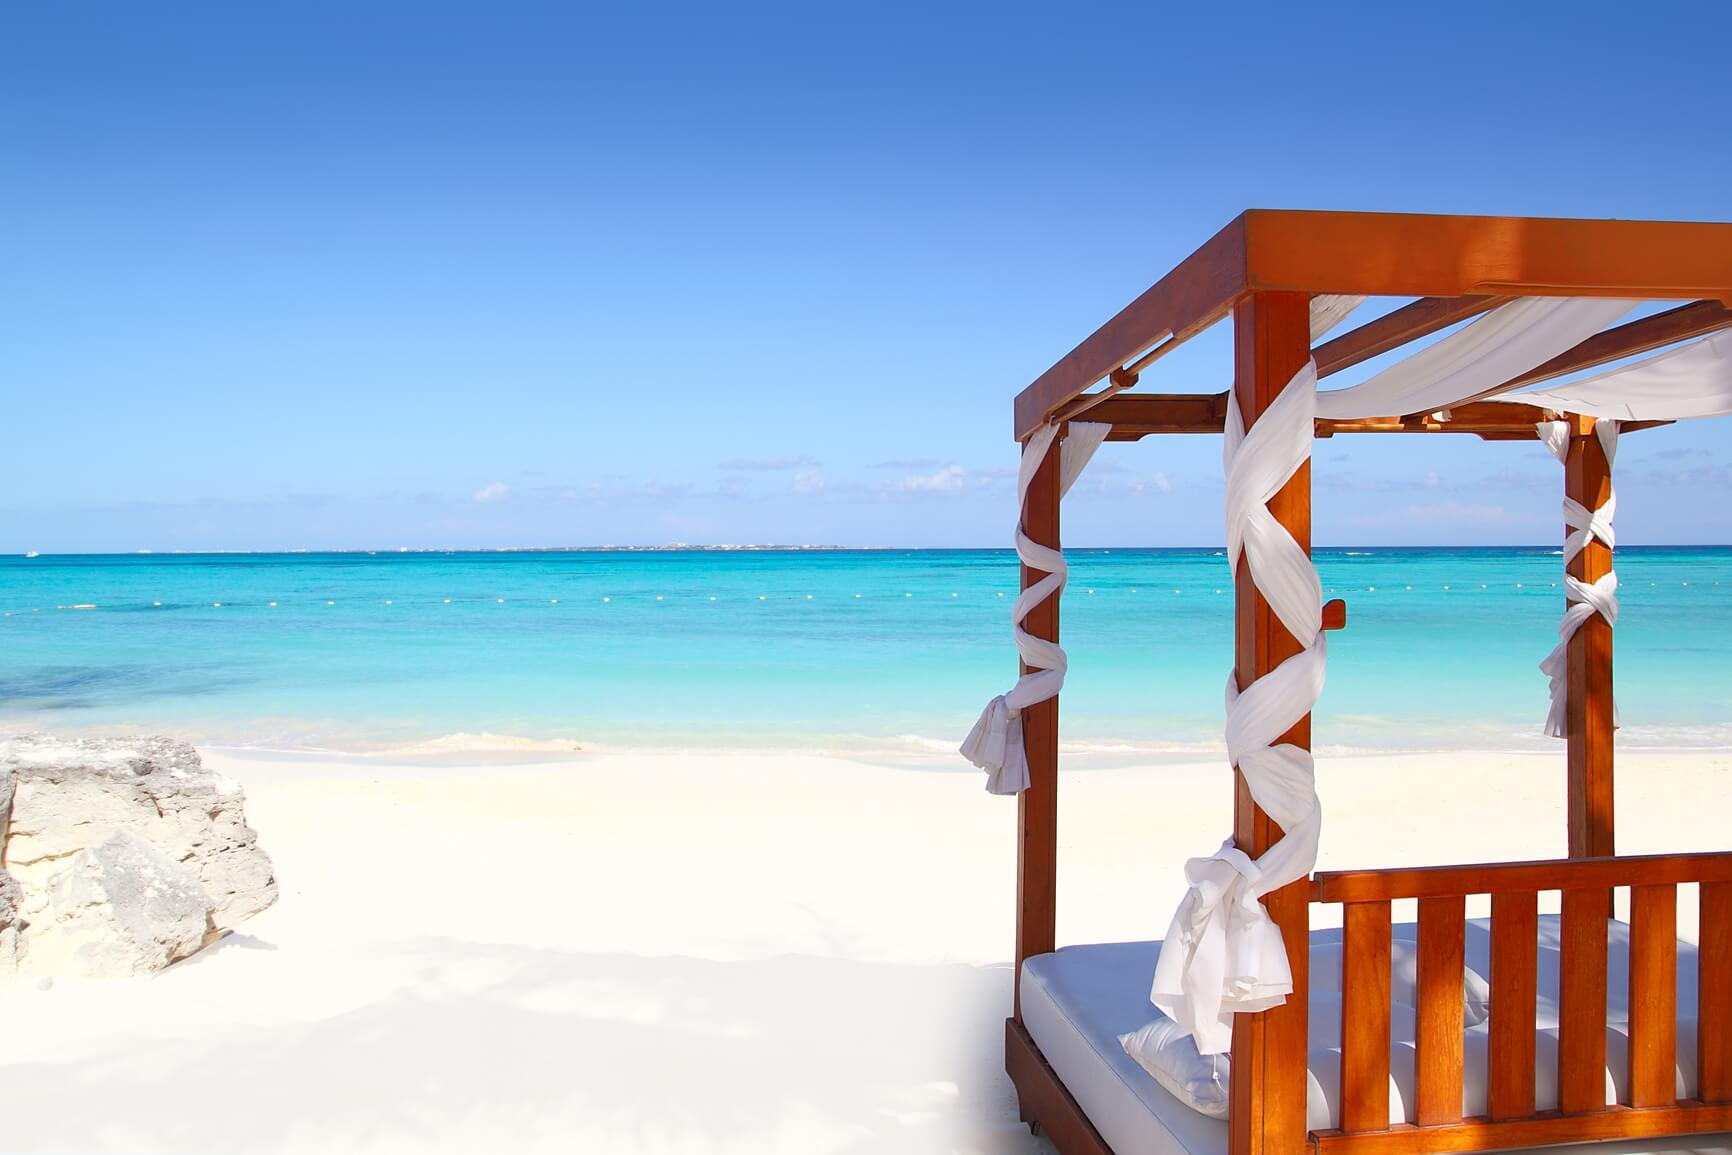 Boise, Idaho to Cancun, Mexico for only $281 roundtrip (Sep-Nov dates)